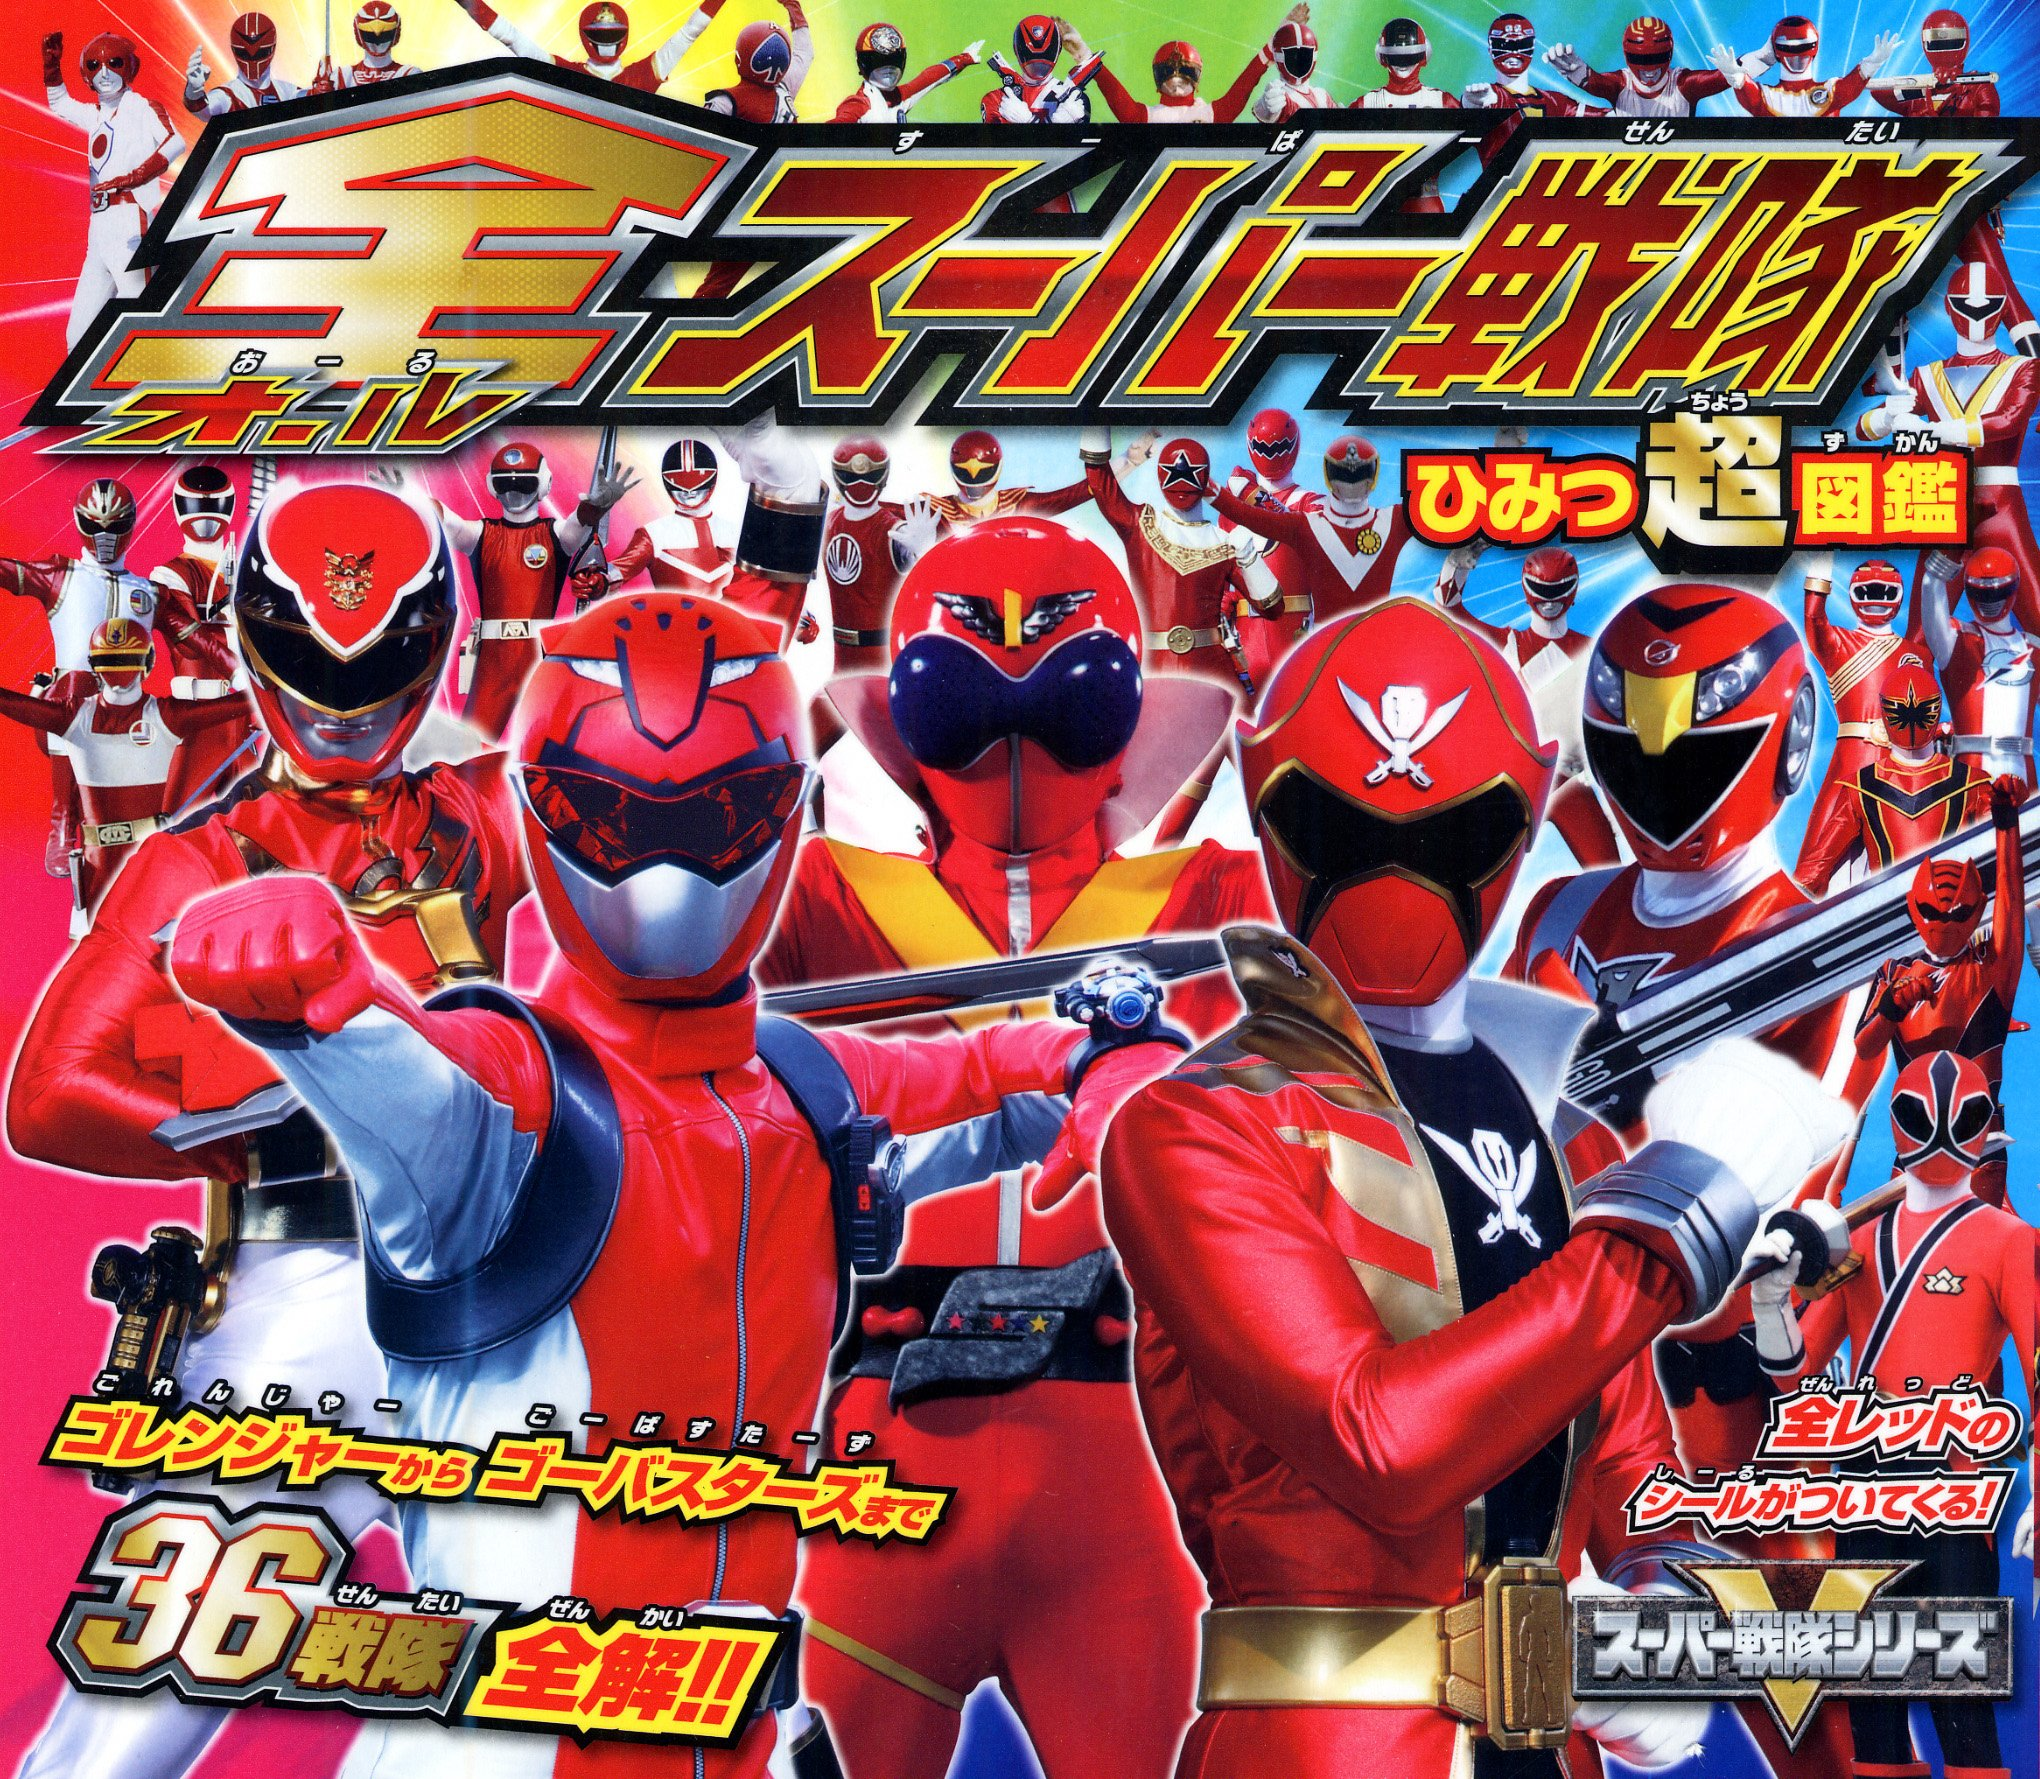 Read Online All (all)-picture book secret, Super sentai pdf